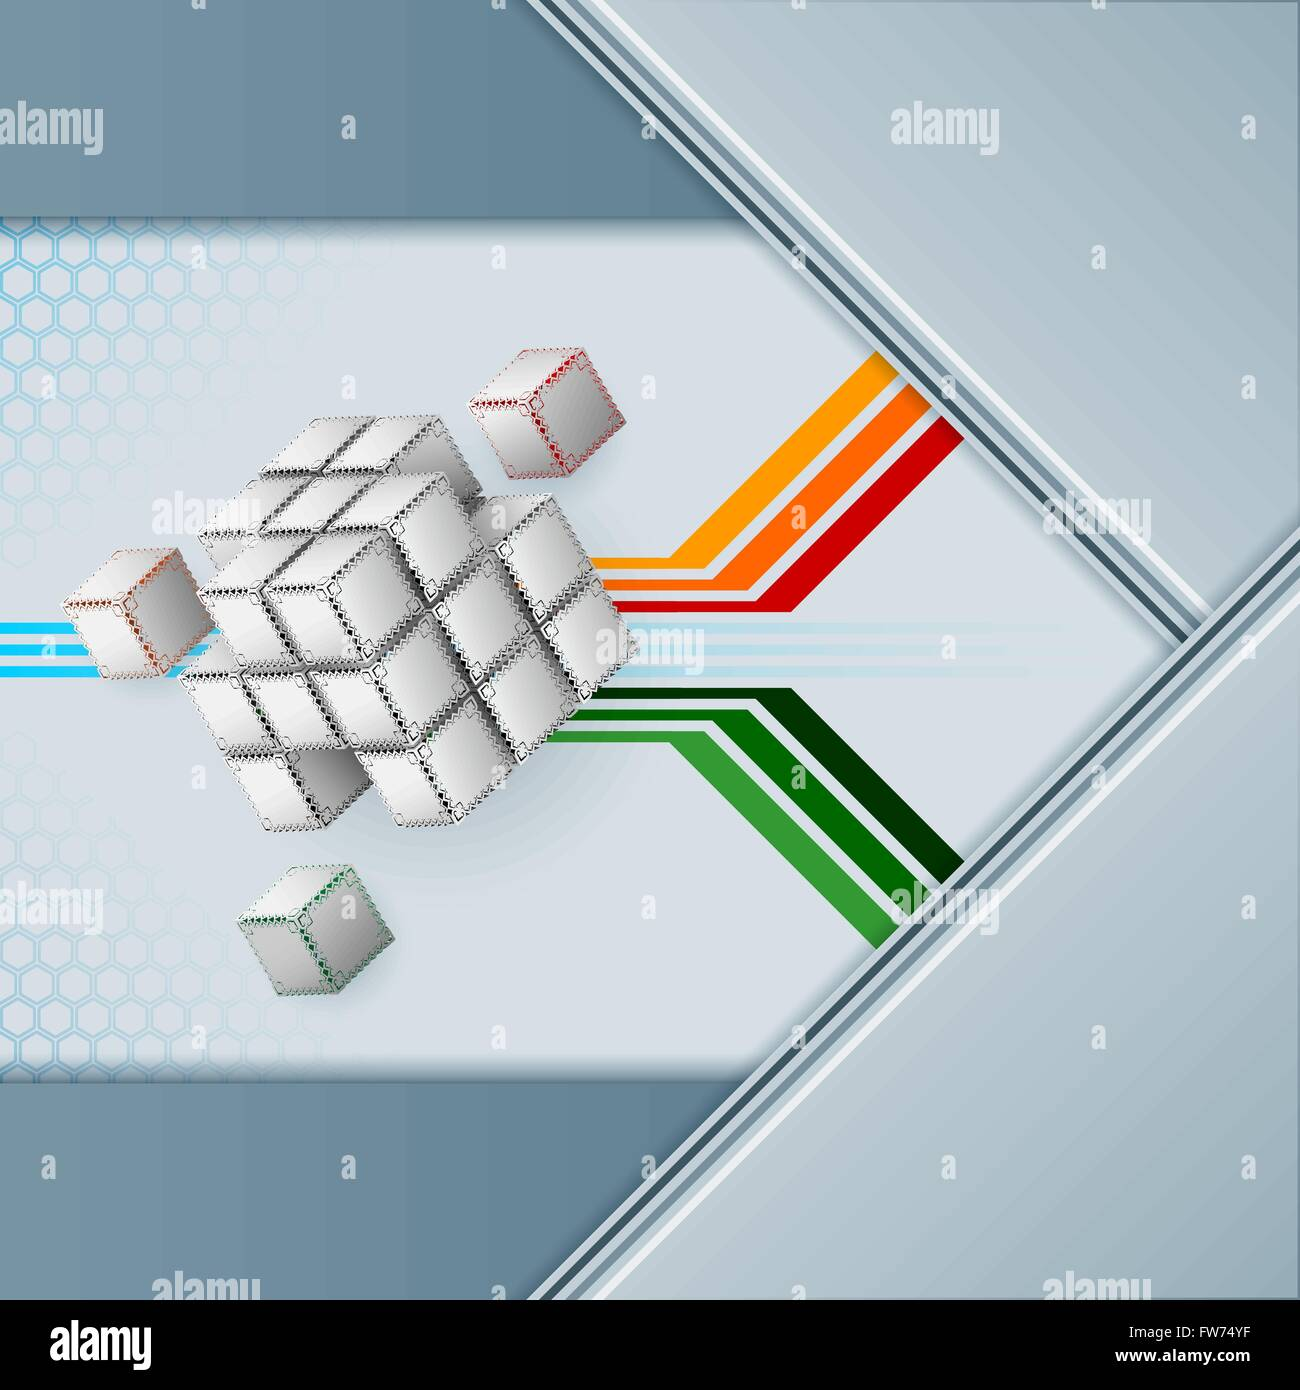 Abstract background design with cubes artistic designed with arabesques borders on all faces and geometric linear - Stock Image